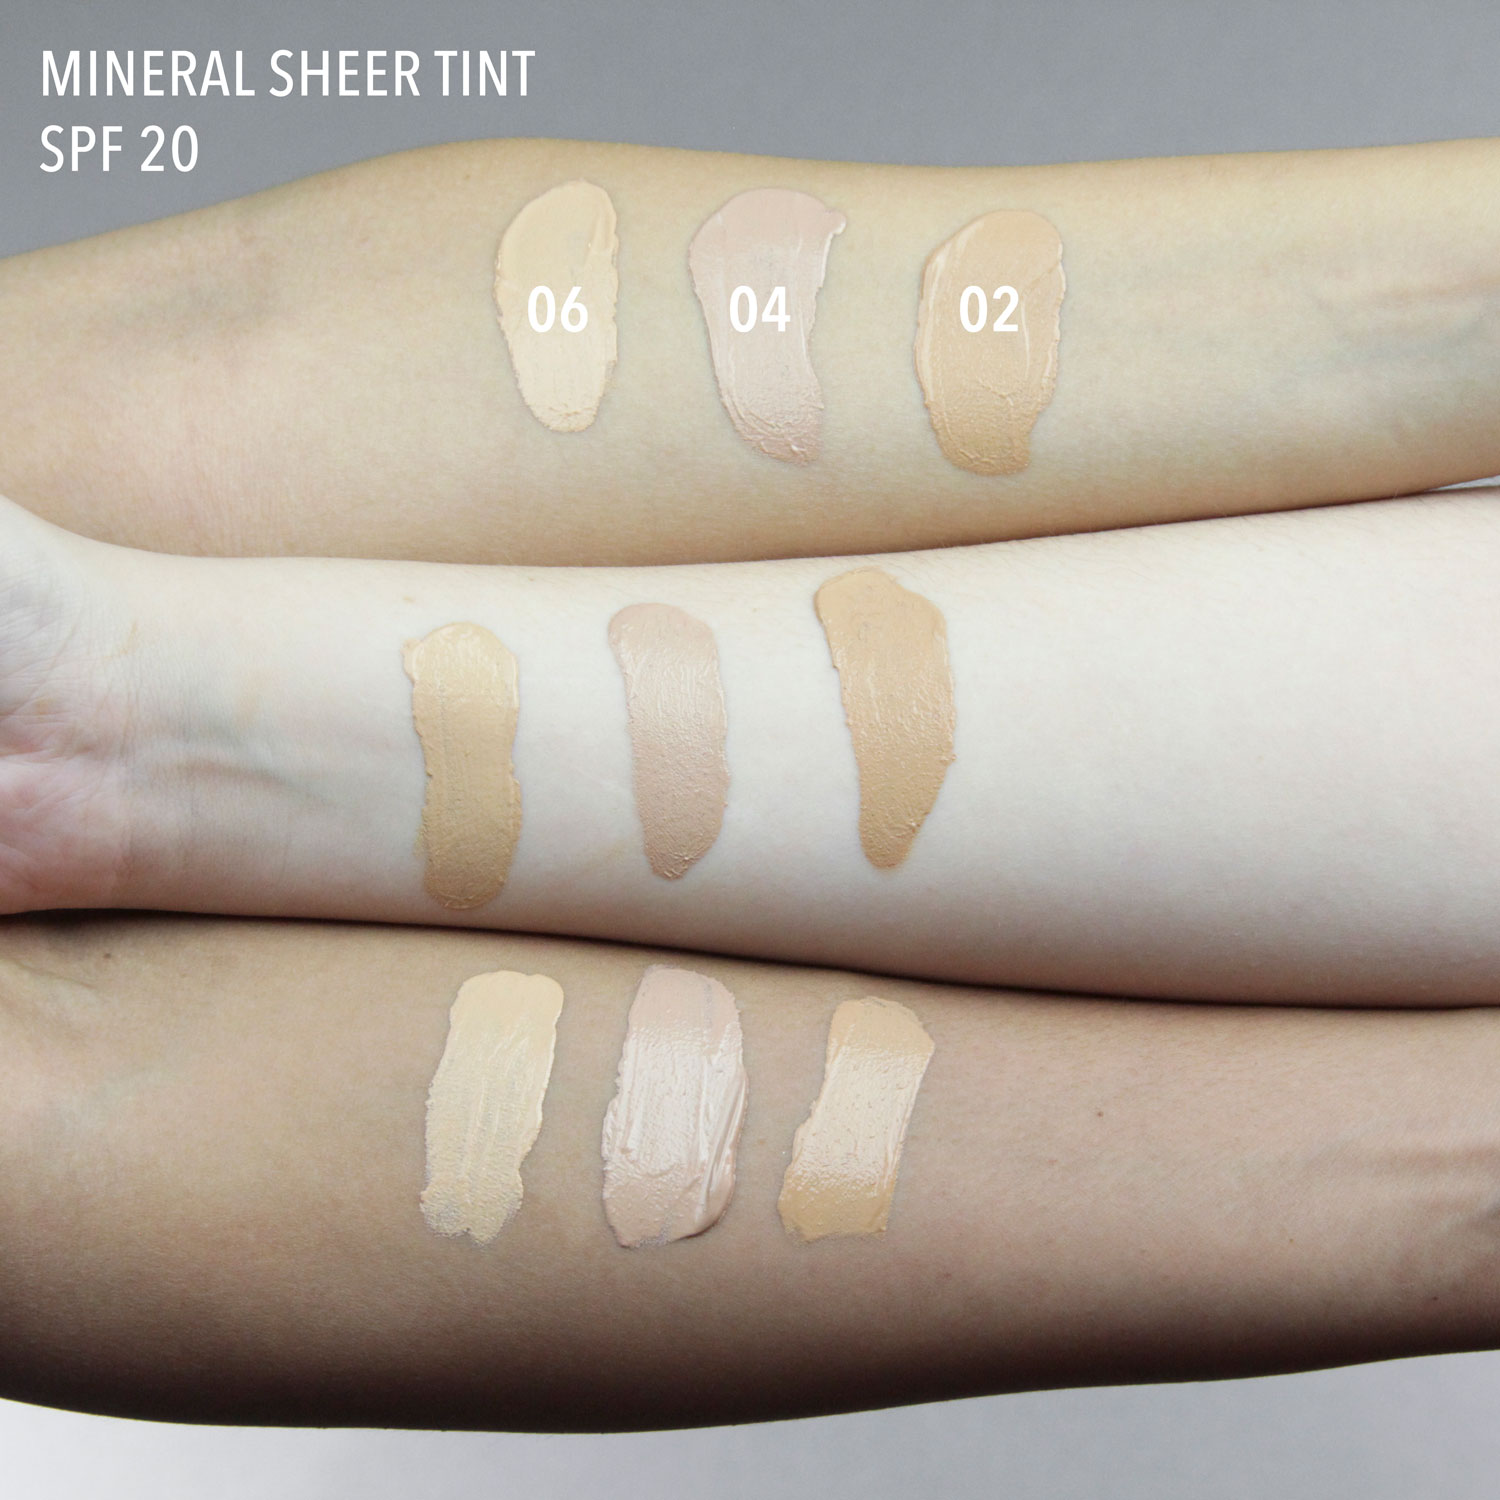 Mineral sheer tint 06 Cameo Glow